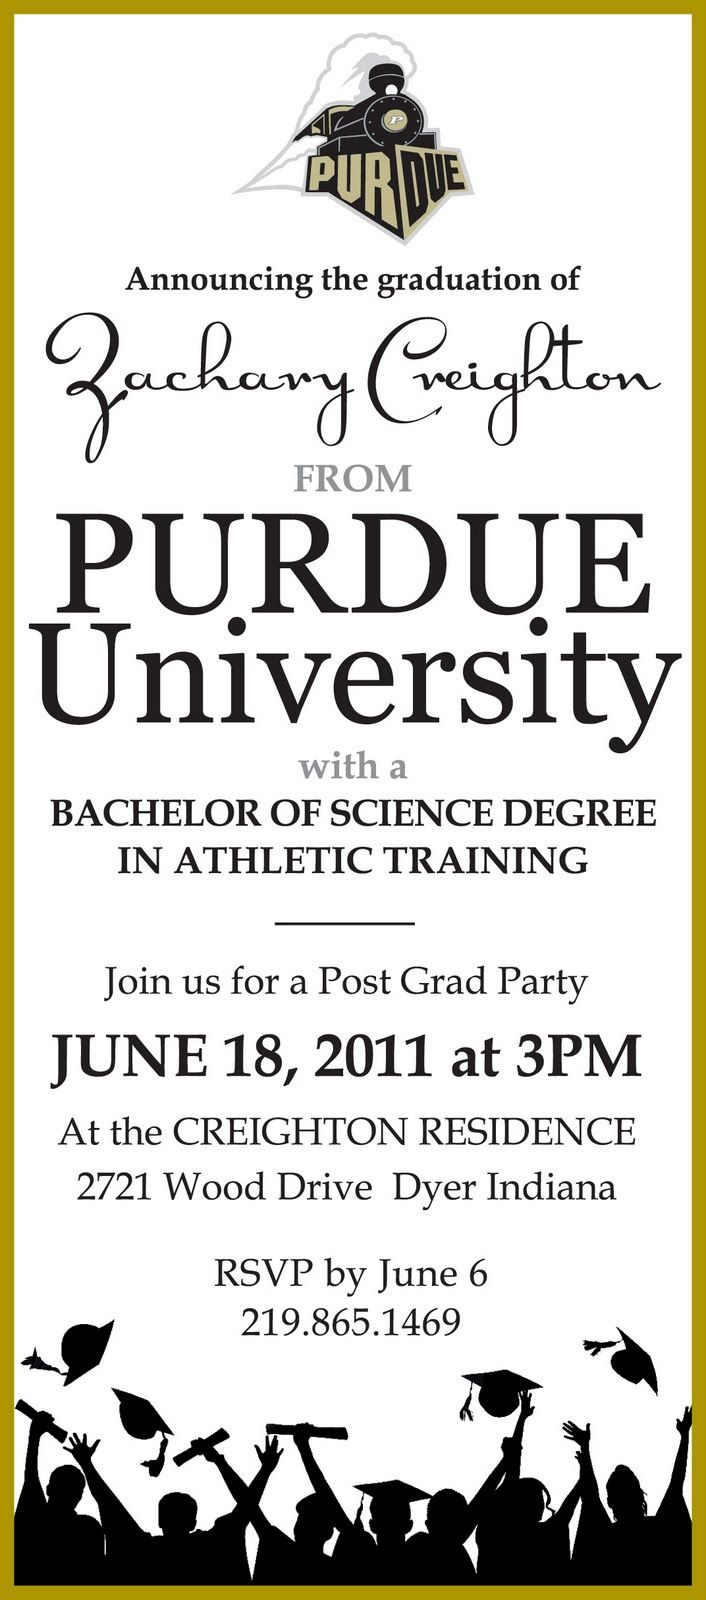 Color printing at purdue - Purdue Logo Graduation Invitation Purdue University Graduation Party Invitation Along With A High School